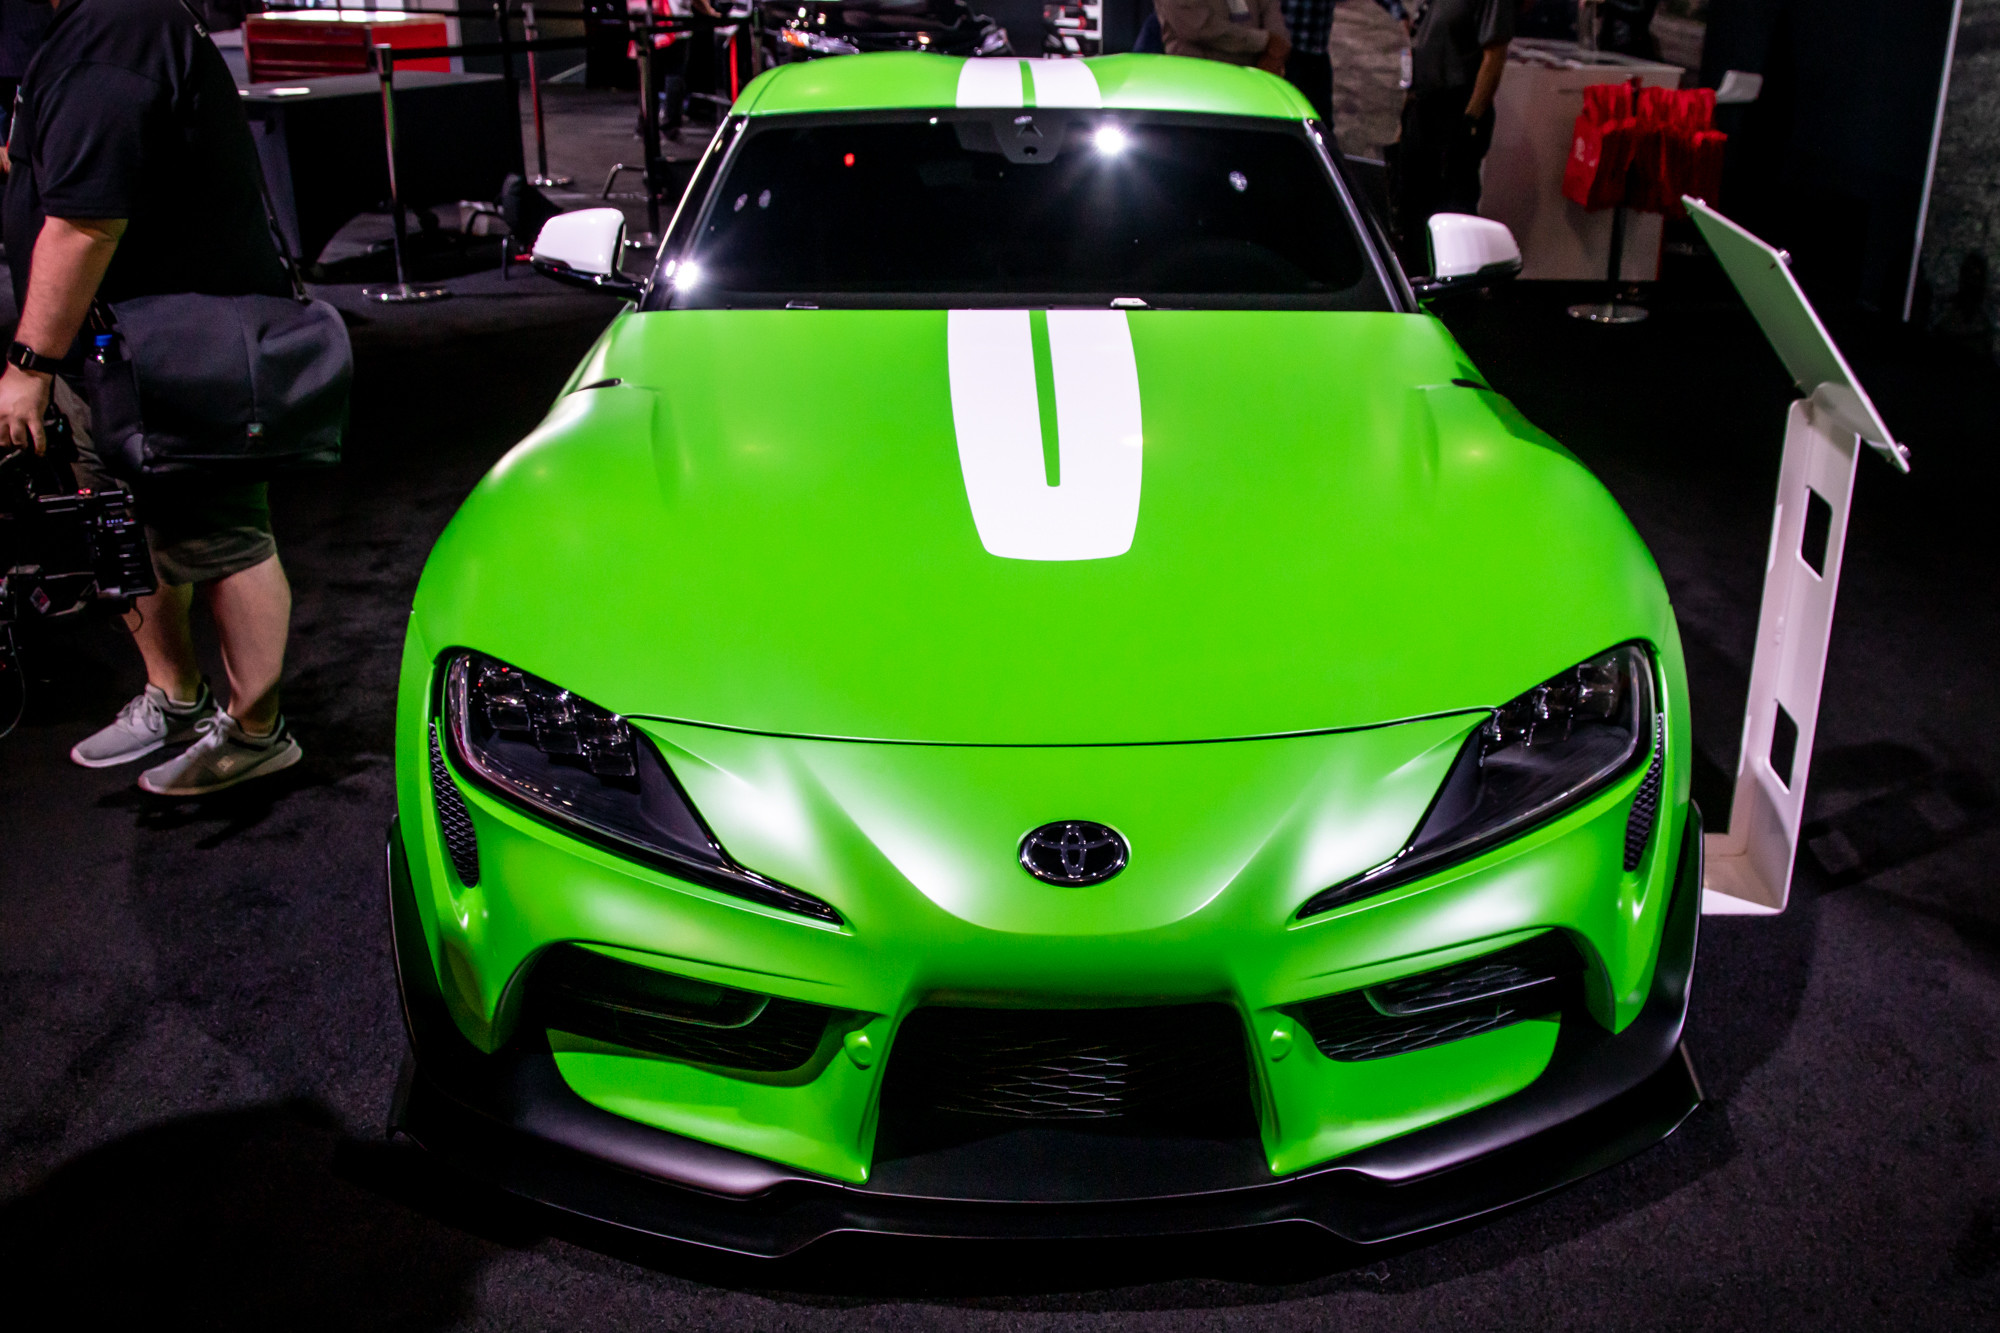 Coolest Cars of the 2019 SEMA Show